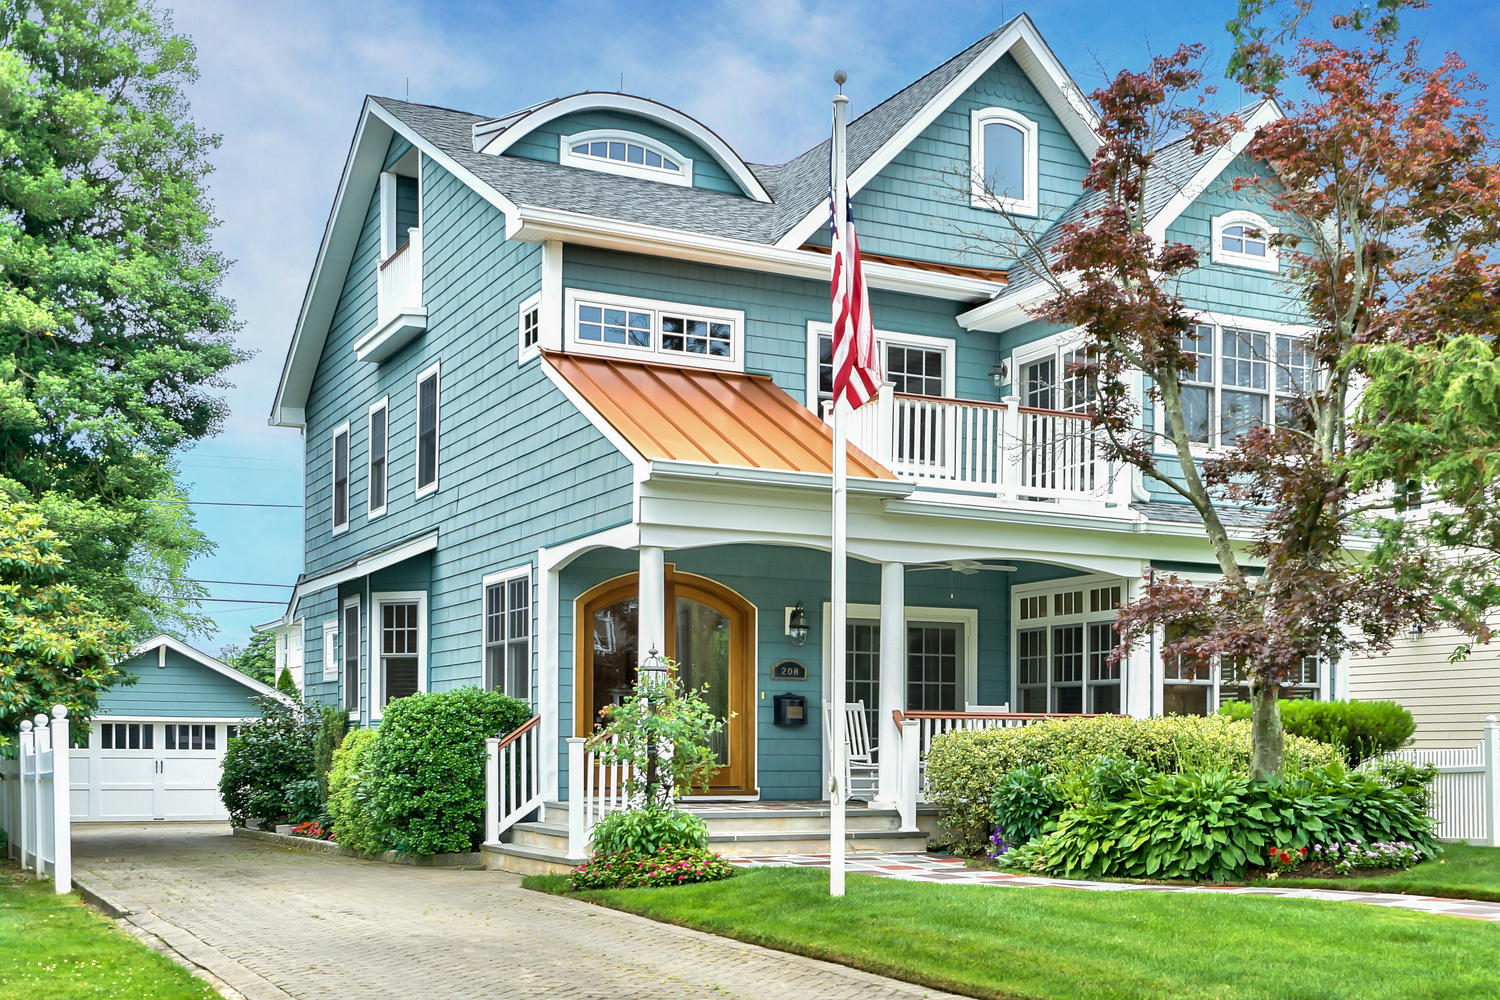 Single Family Home for Sale at A Classic Sea Girt Home! 208 Brooklyn Boulevard Sea Girt, New Jersey 08750 United States